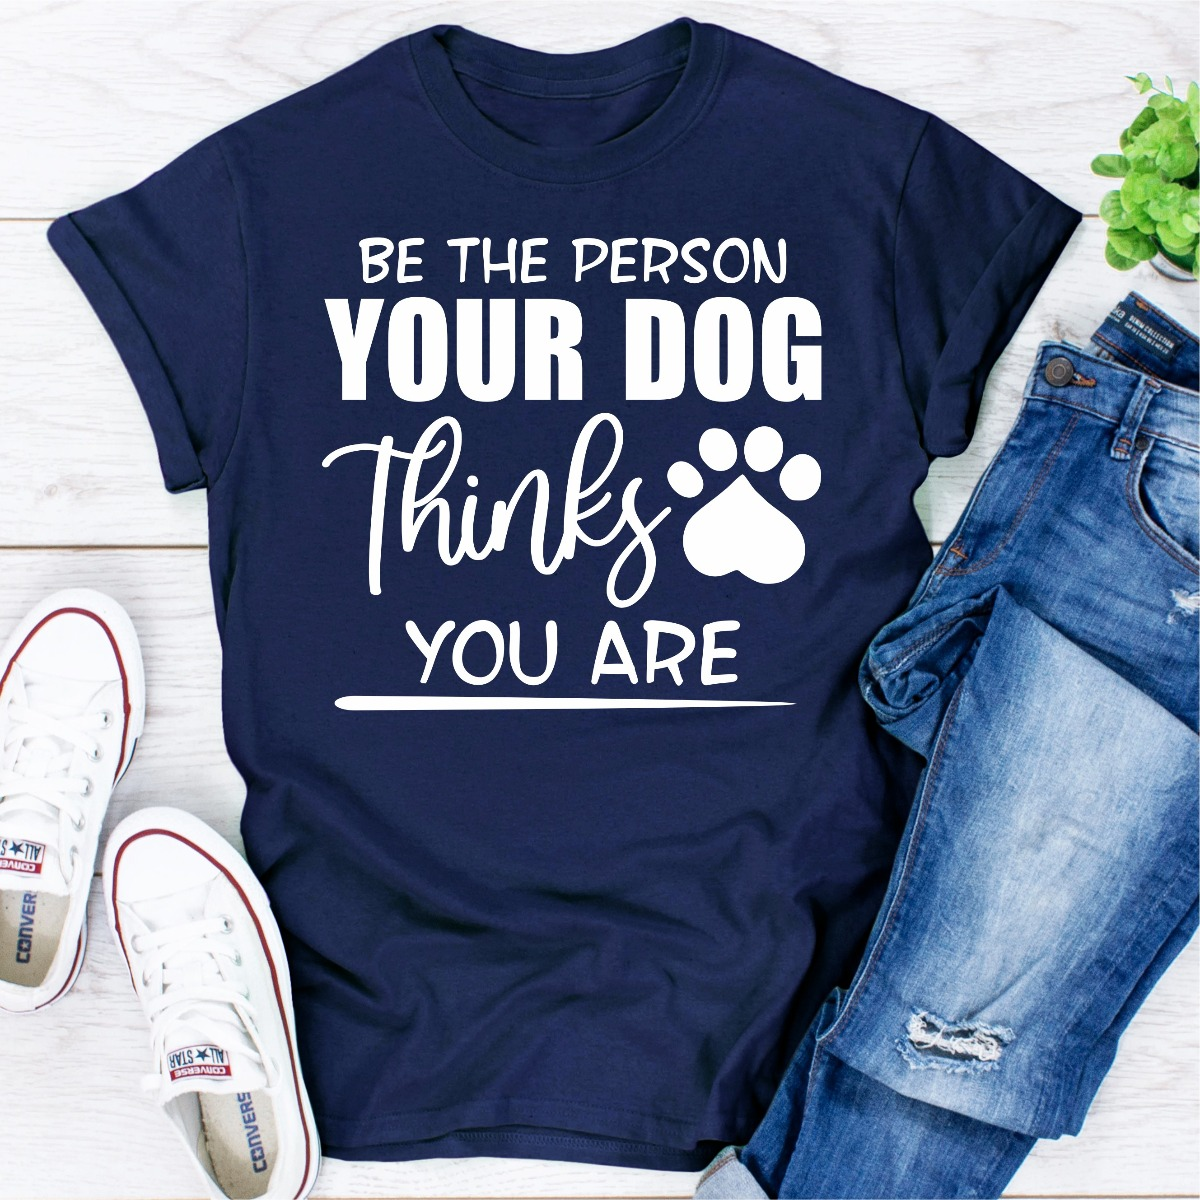 Be The Person Your Dog Thinks You Are (Navy / 2Xl)